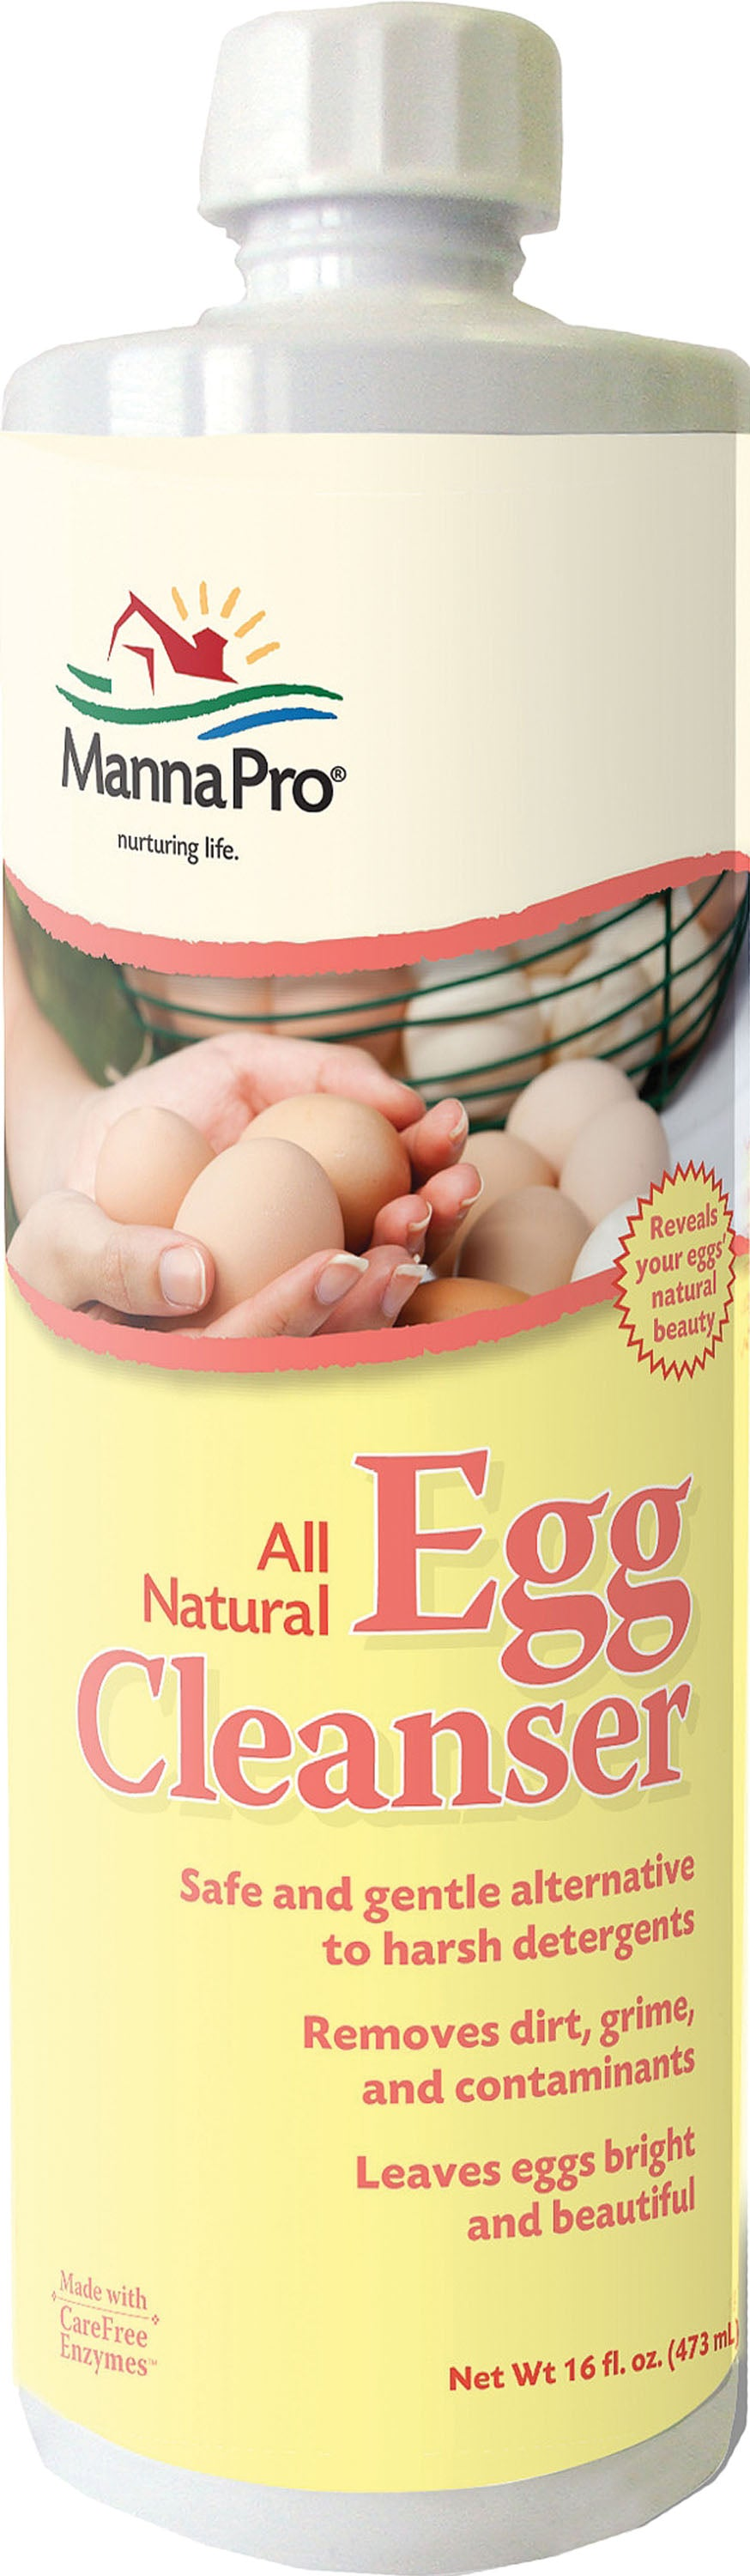 Manna Pro-packaged - Egg Cleanser